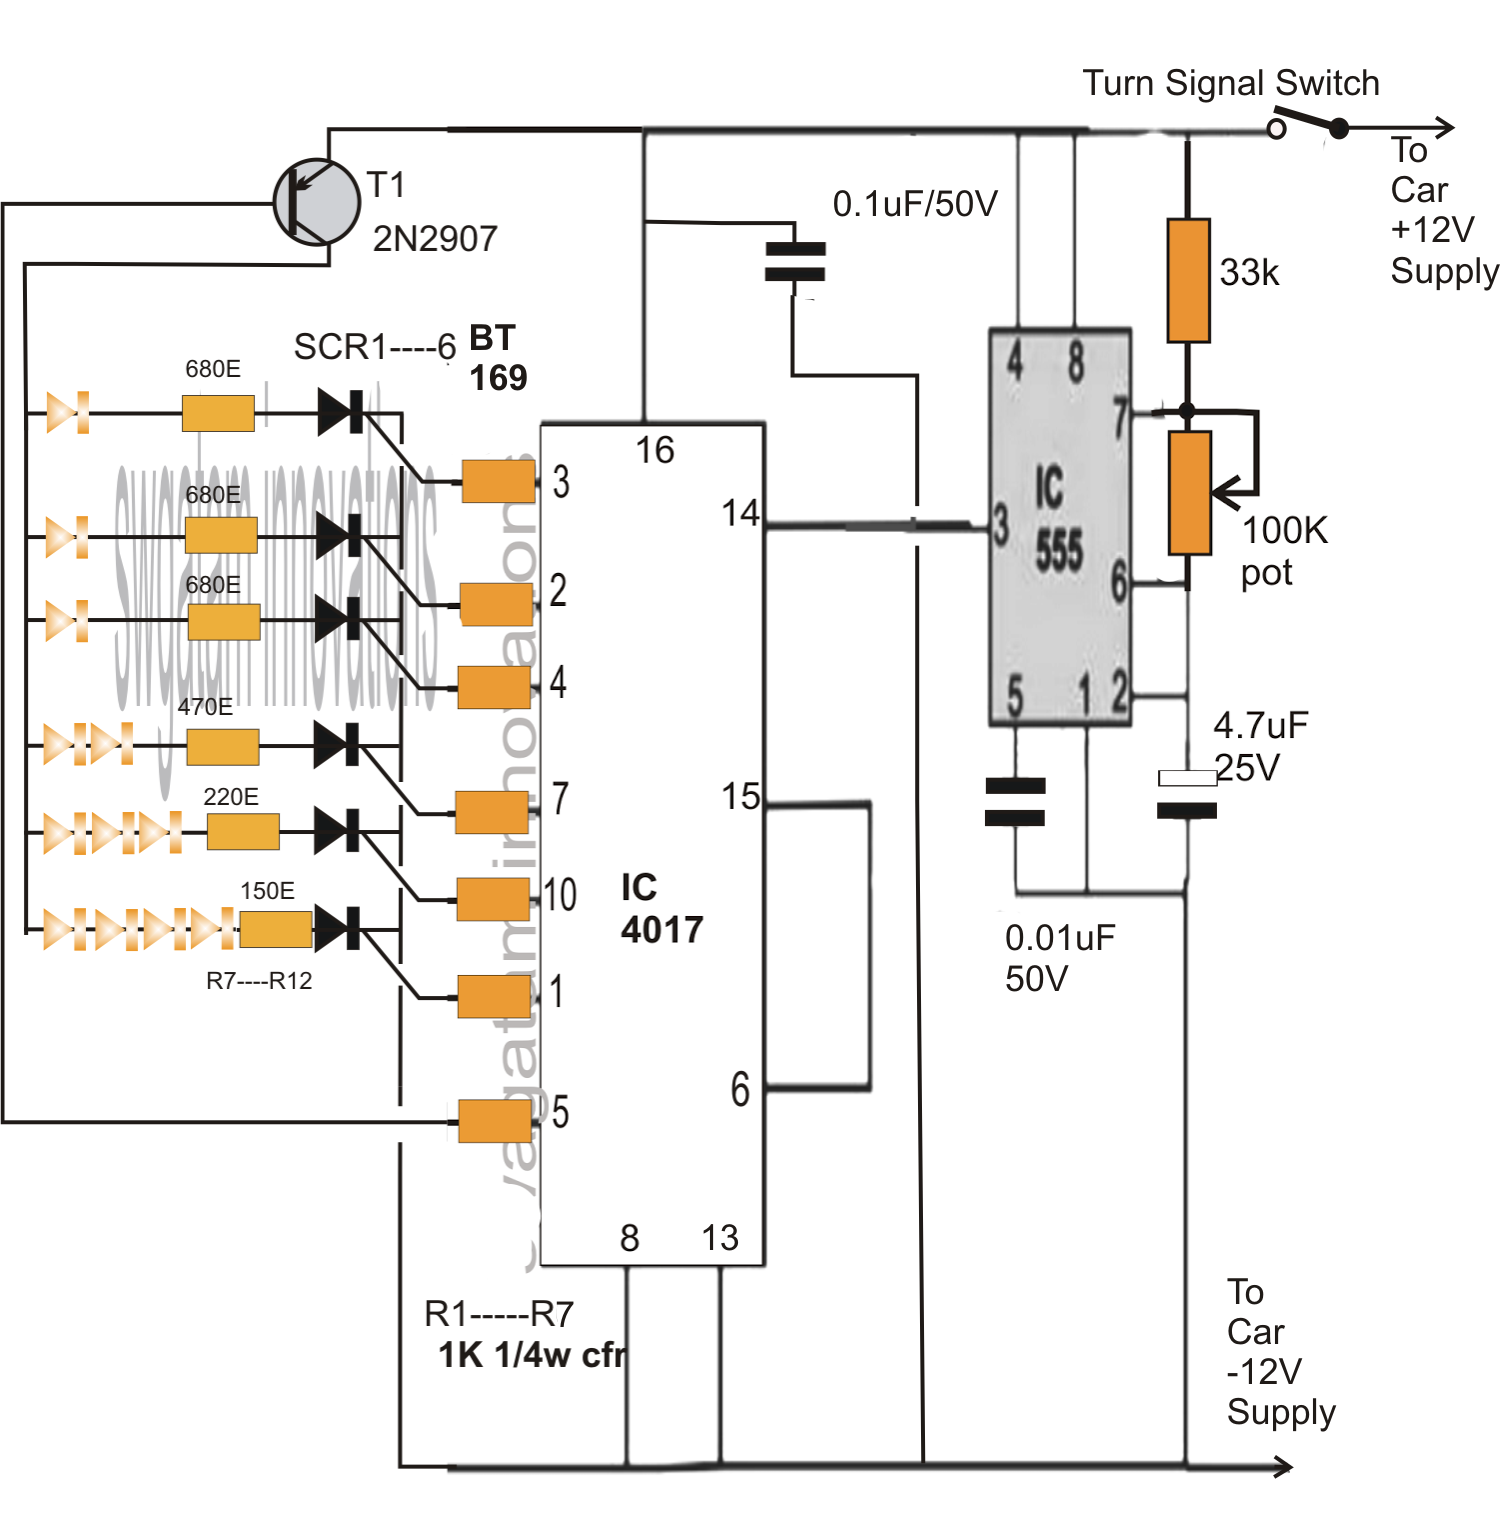 Jeep Xj Fog Light Wiring moreover 12v 30a Relay Wiring Diagram in addition Meyer E 47 together with Wiring Diagram For 3 Way Switch And Dimmer additionally 555617 Routing Cable New Ceiling Light. on adding a light switch diagram